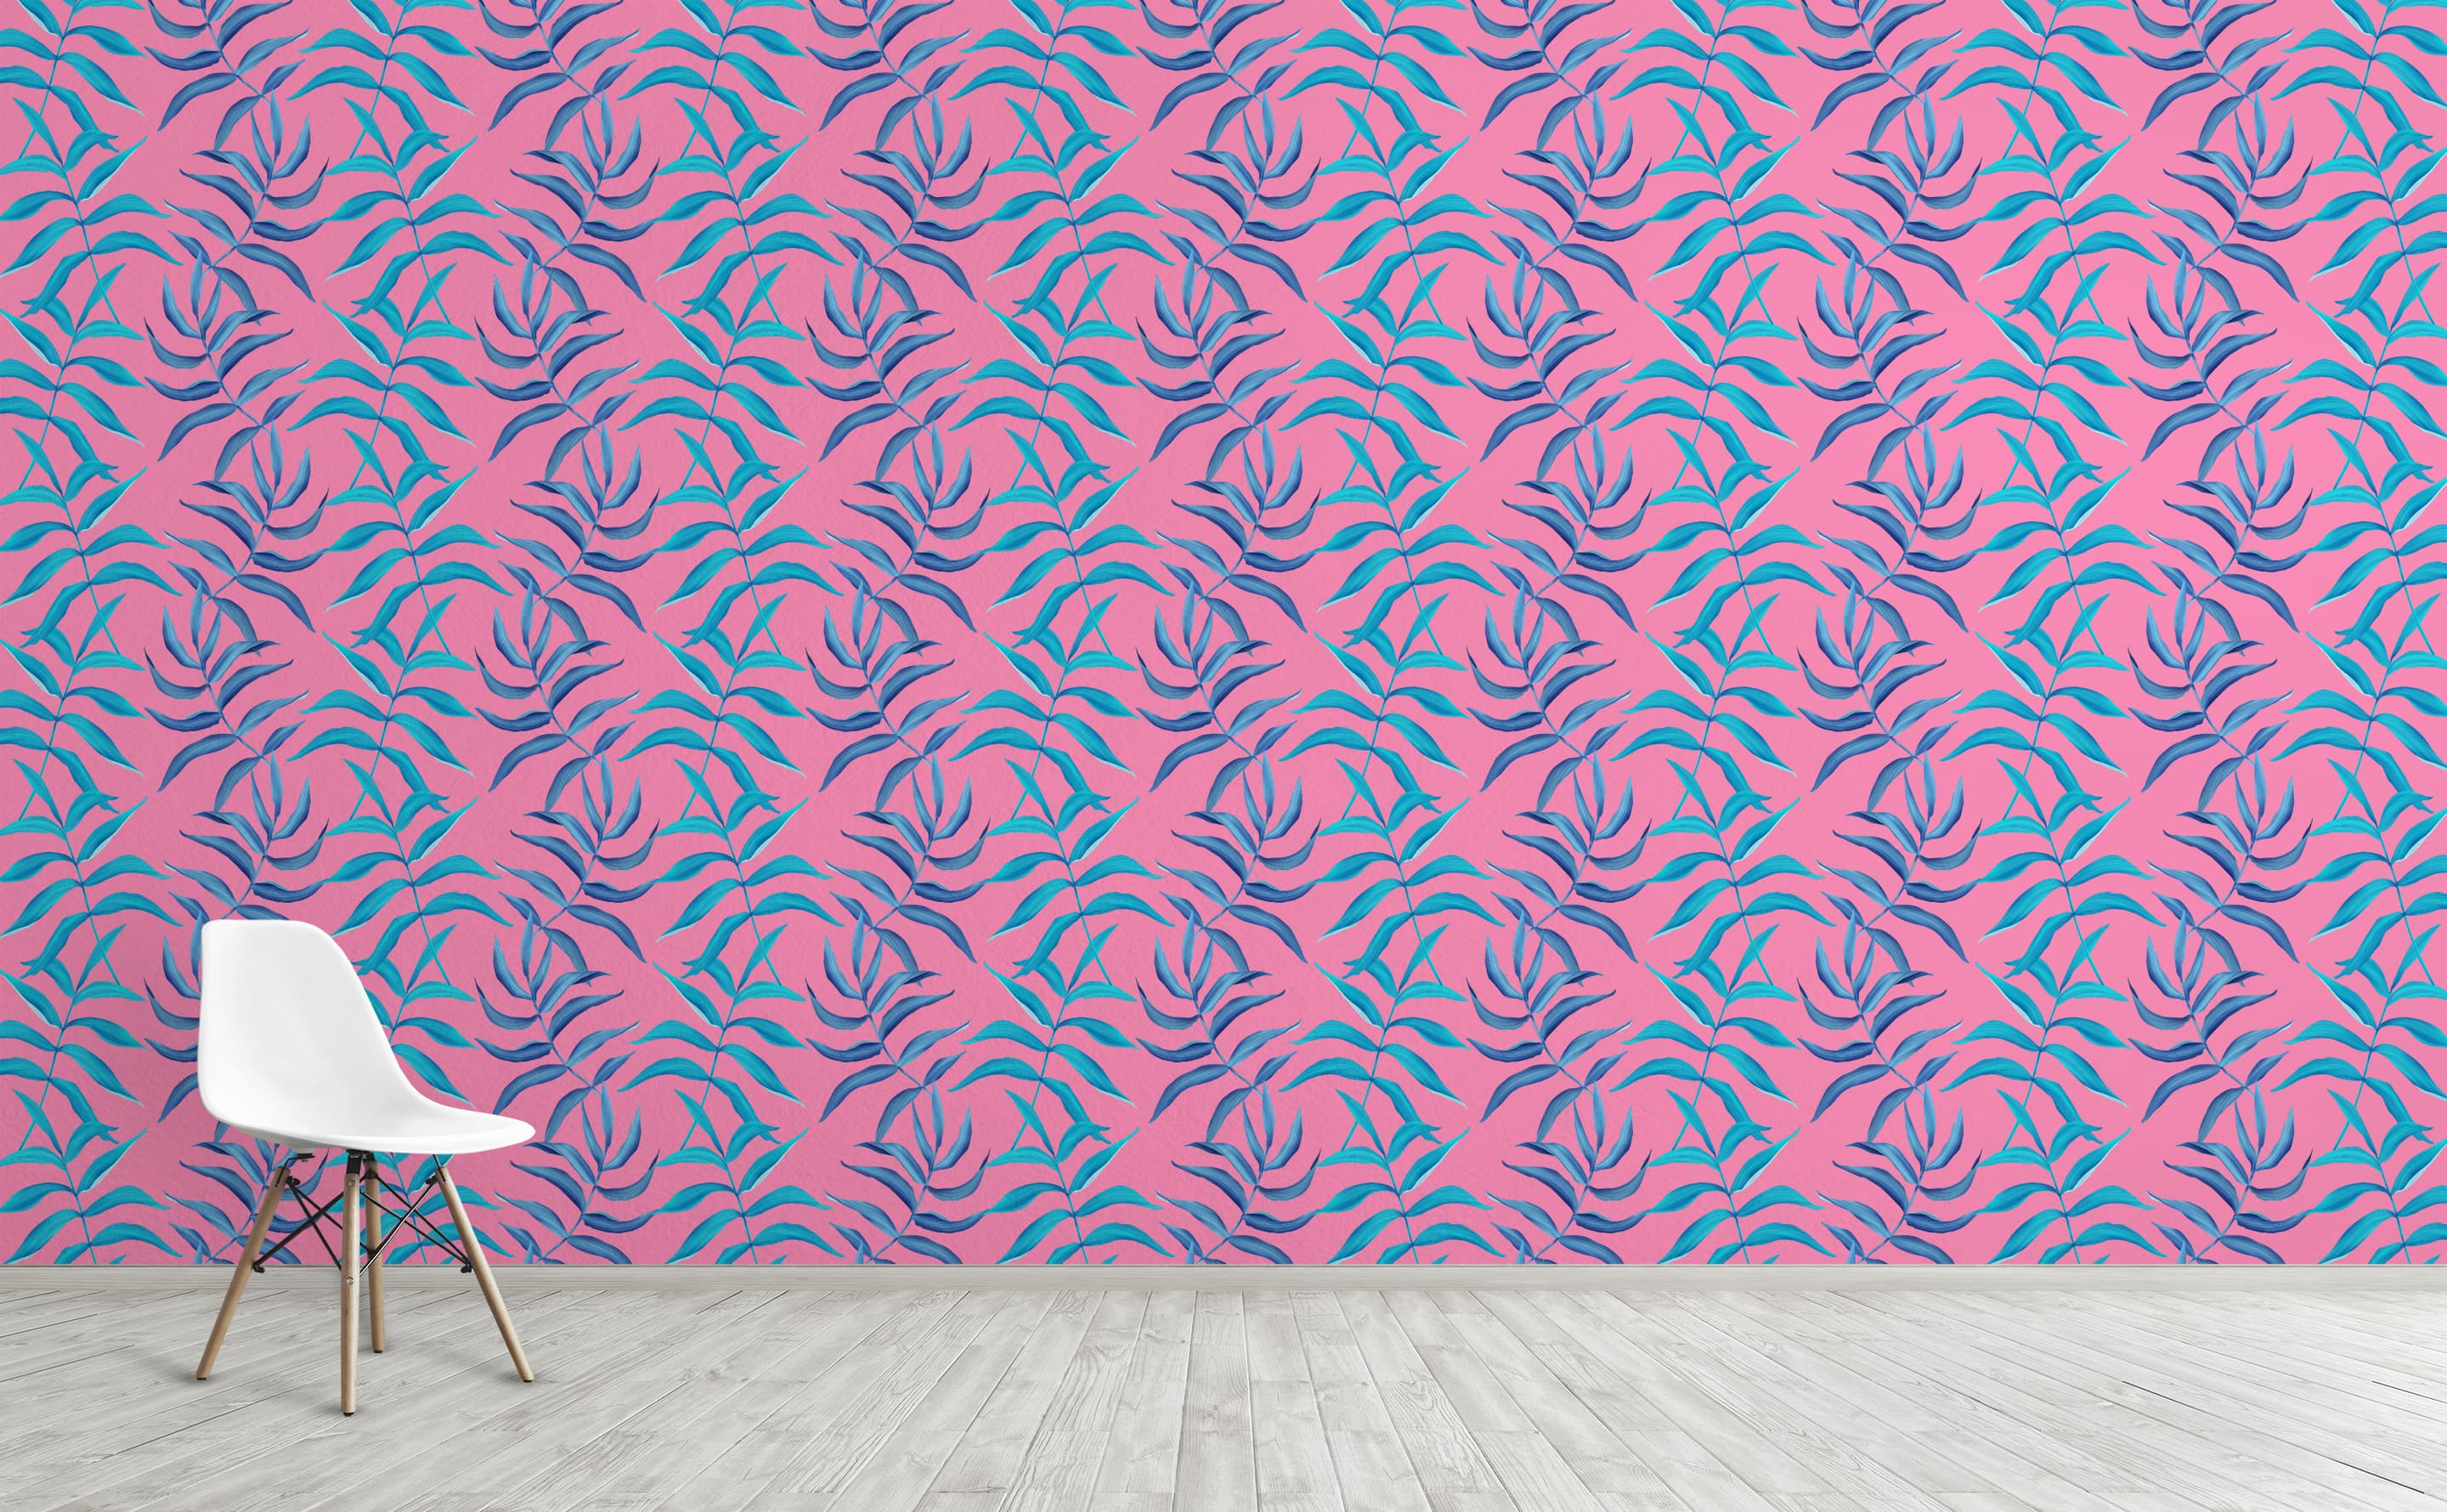 Tropical Leaves Wallpaper For Walls Neon Palms Wallsneedlove